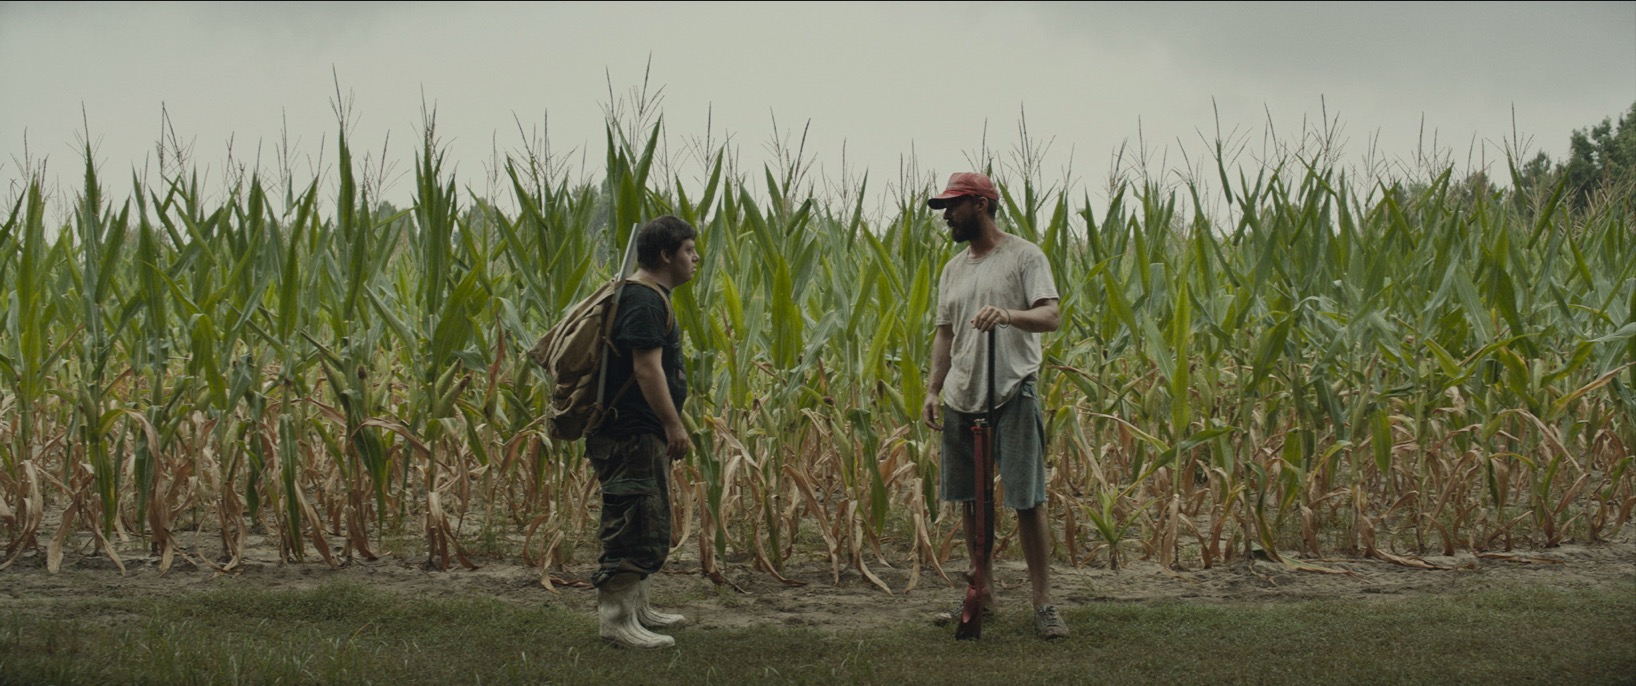 Zack gottsagen and shia labeouf in the peanut butter falcon photo credit nigel bluck courtesy of roadside attractions and armory films